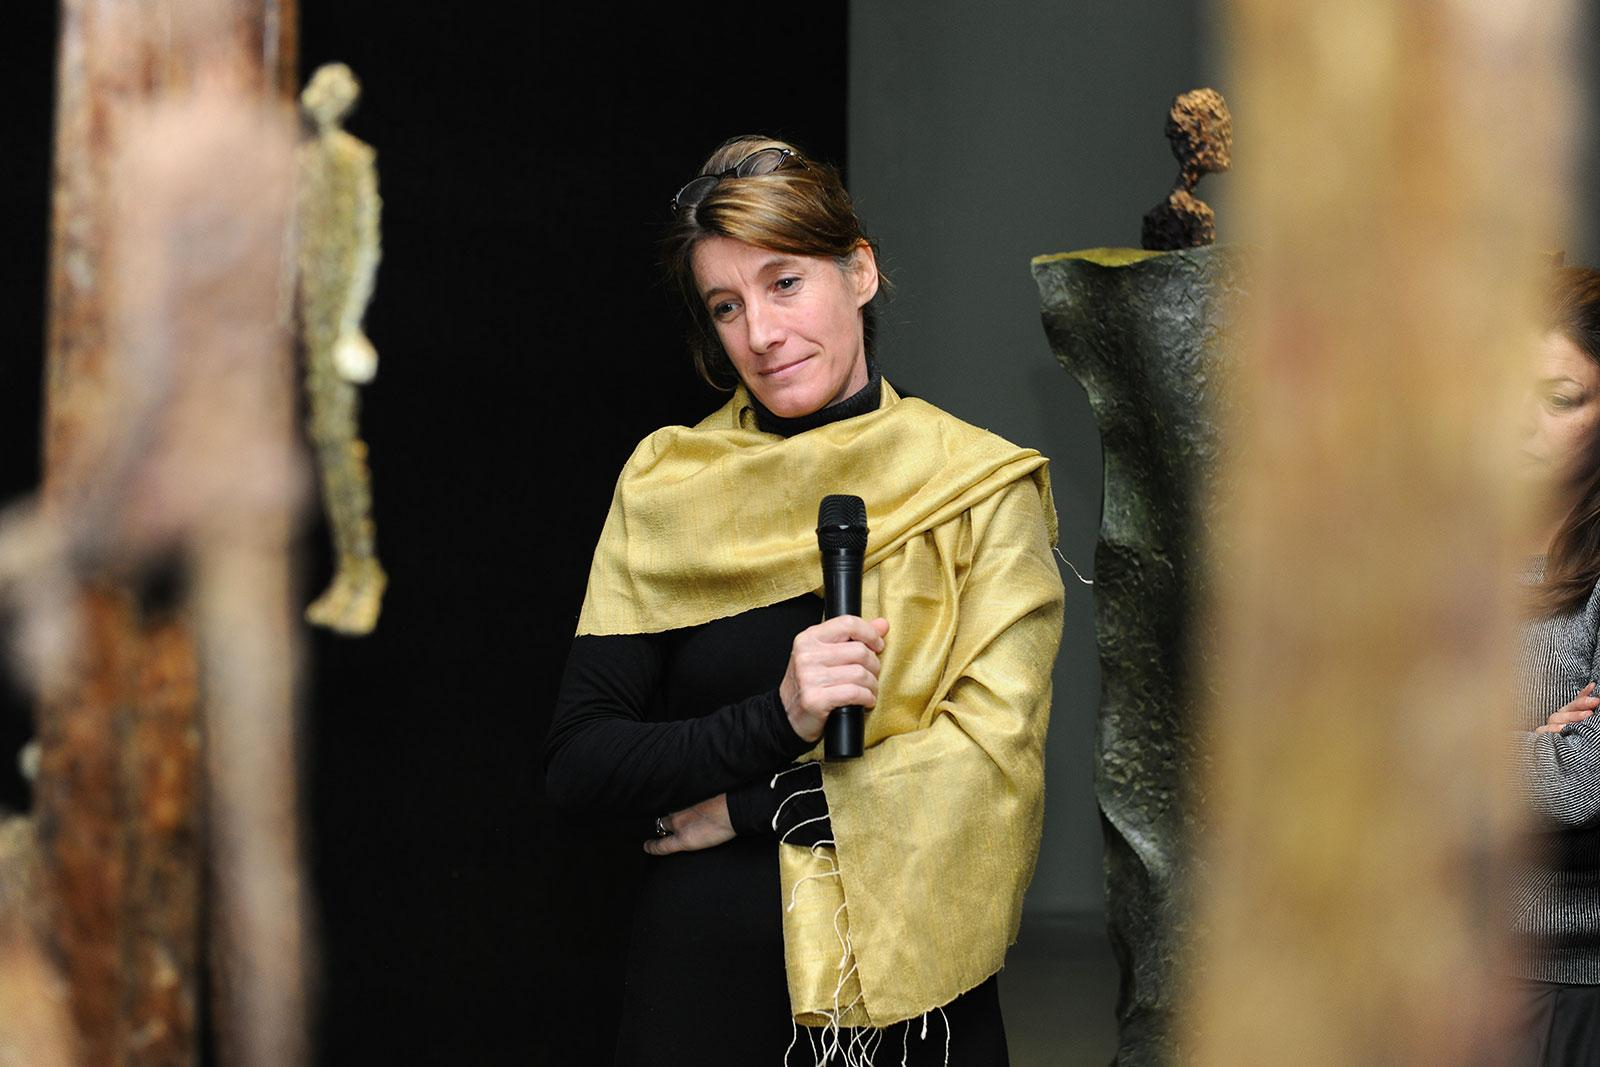 Anatomy of a creative path by French sculptor Val - Valérie Goutard - at Yishu8 foundation with Sculptureval